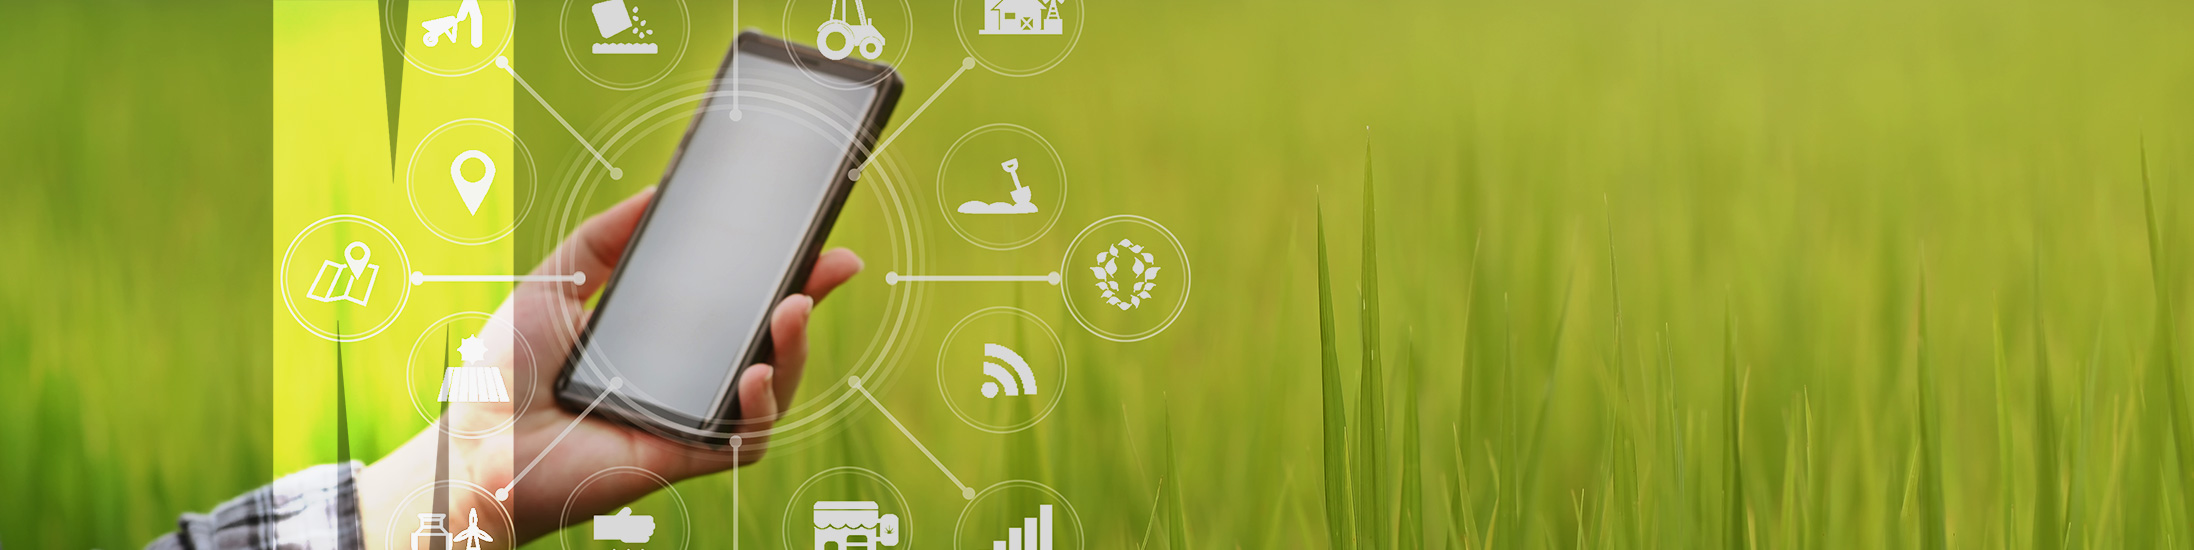 EDGE COMPUTING FOR SMART AGRICULTURE